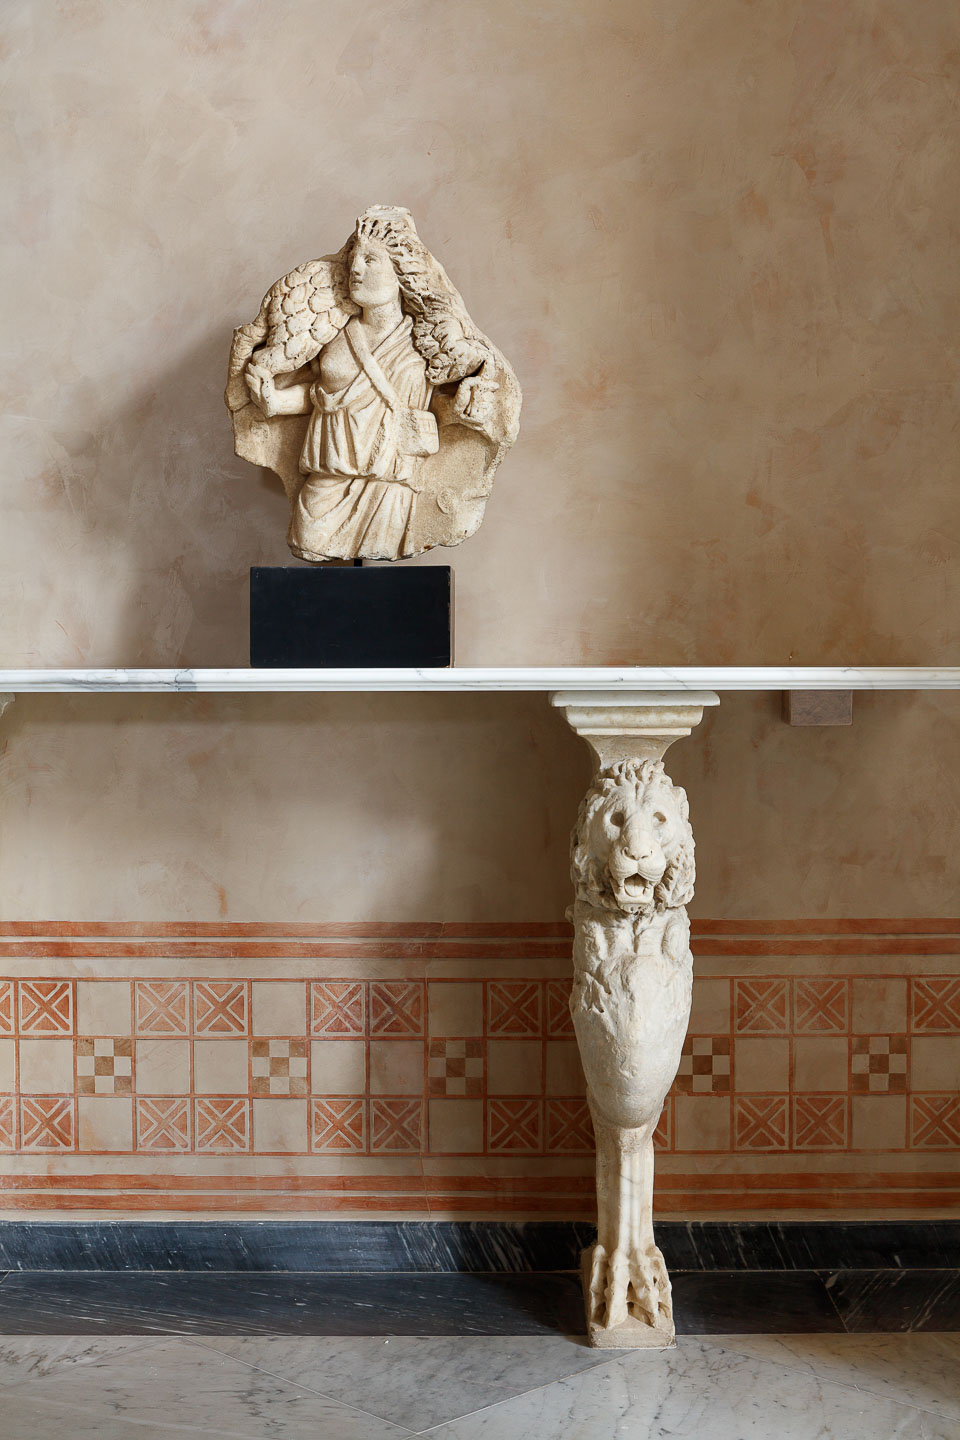 Villa Astor best exclusive interior decor decoration marble antique console Heritage collection decorative art exclusivity luxurious accommodation stay The Heritage Collection